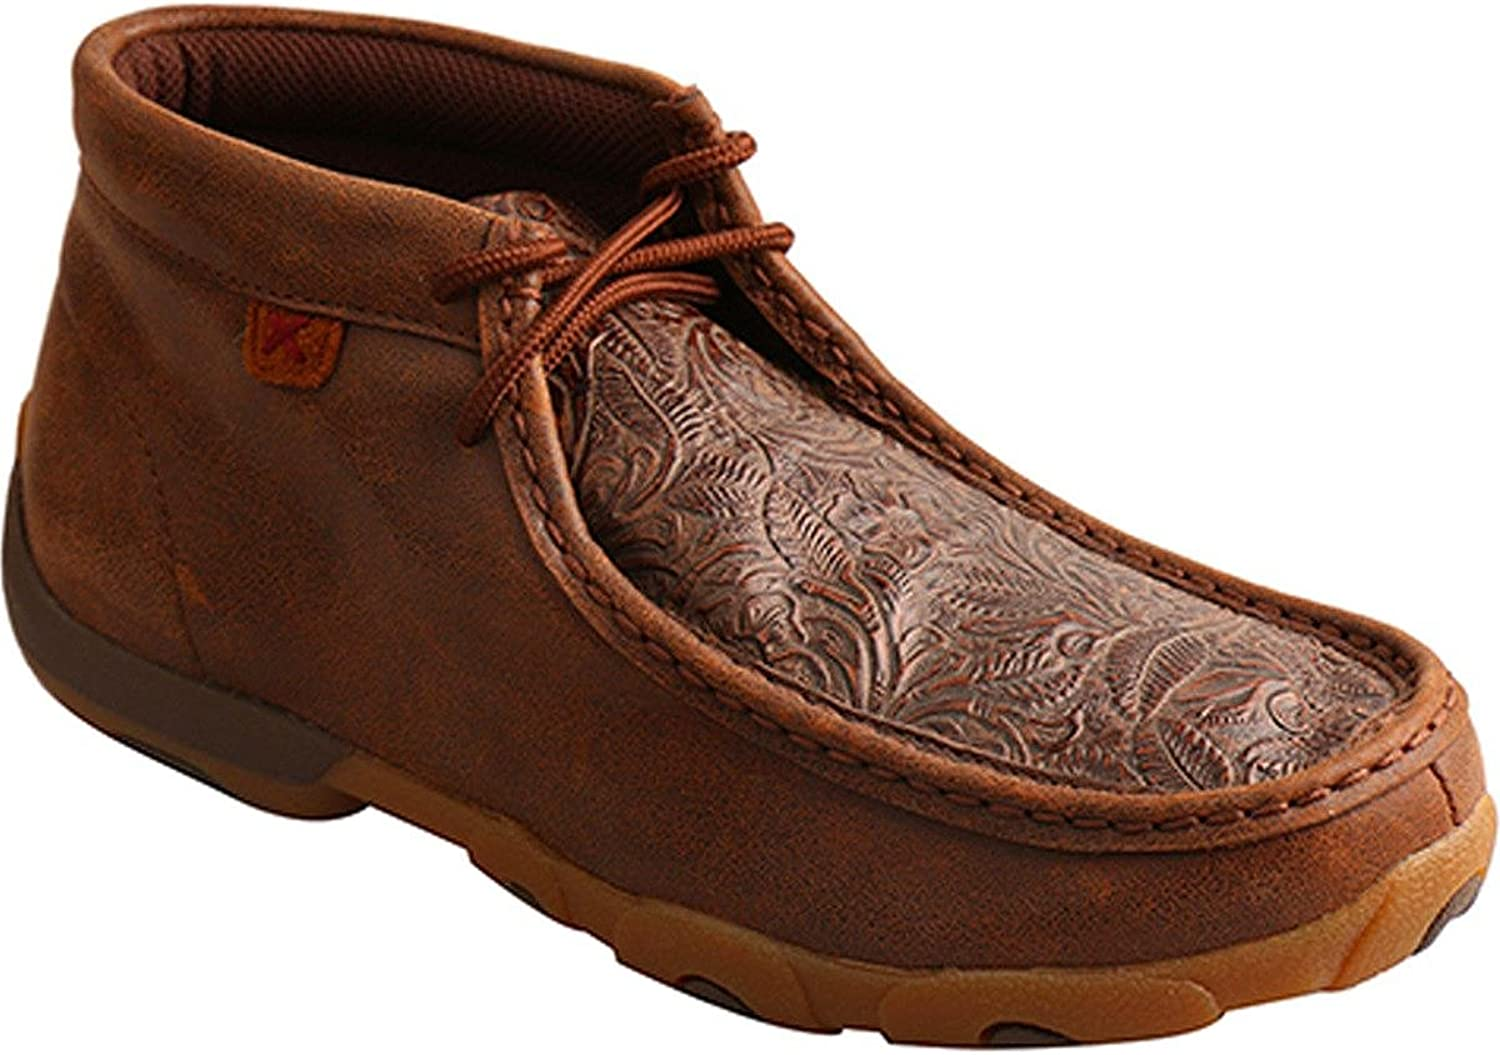 Twisted X WDM0079 Women's Driving Moccasins Chukka, Brown Brown Print